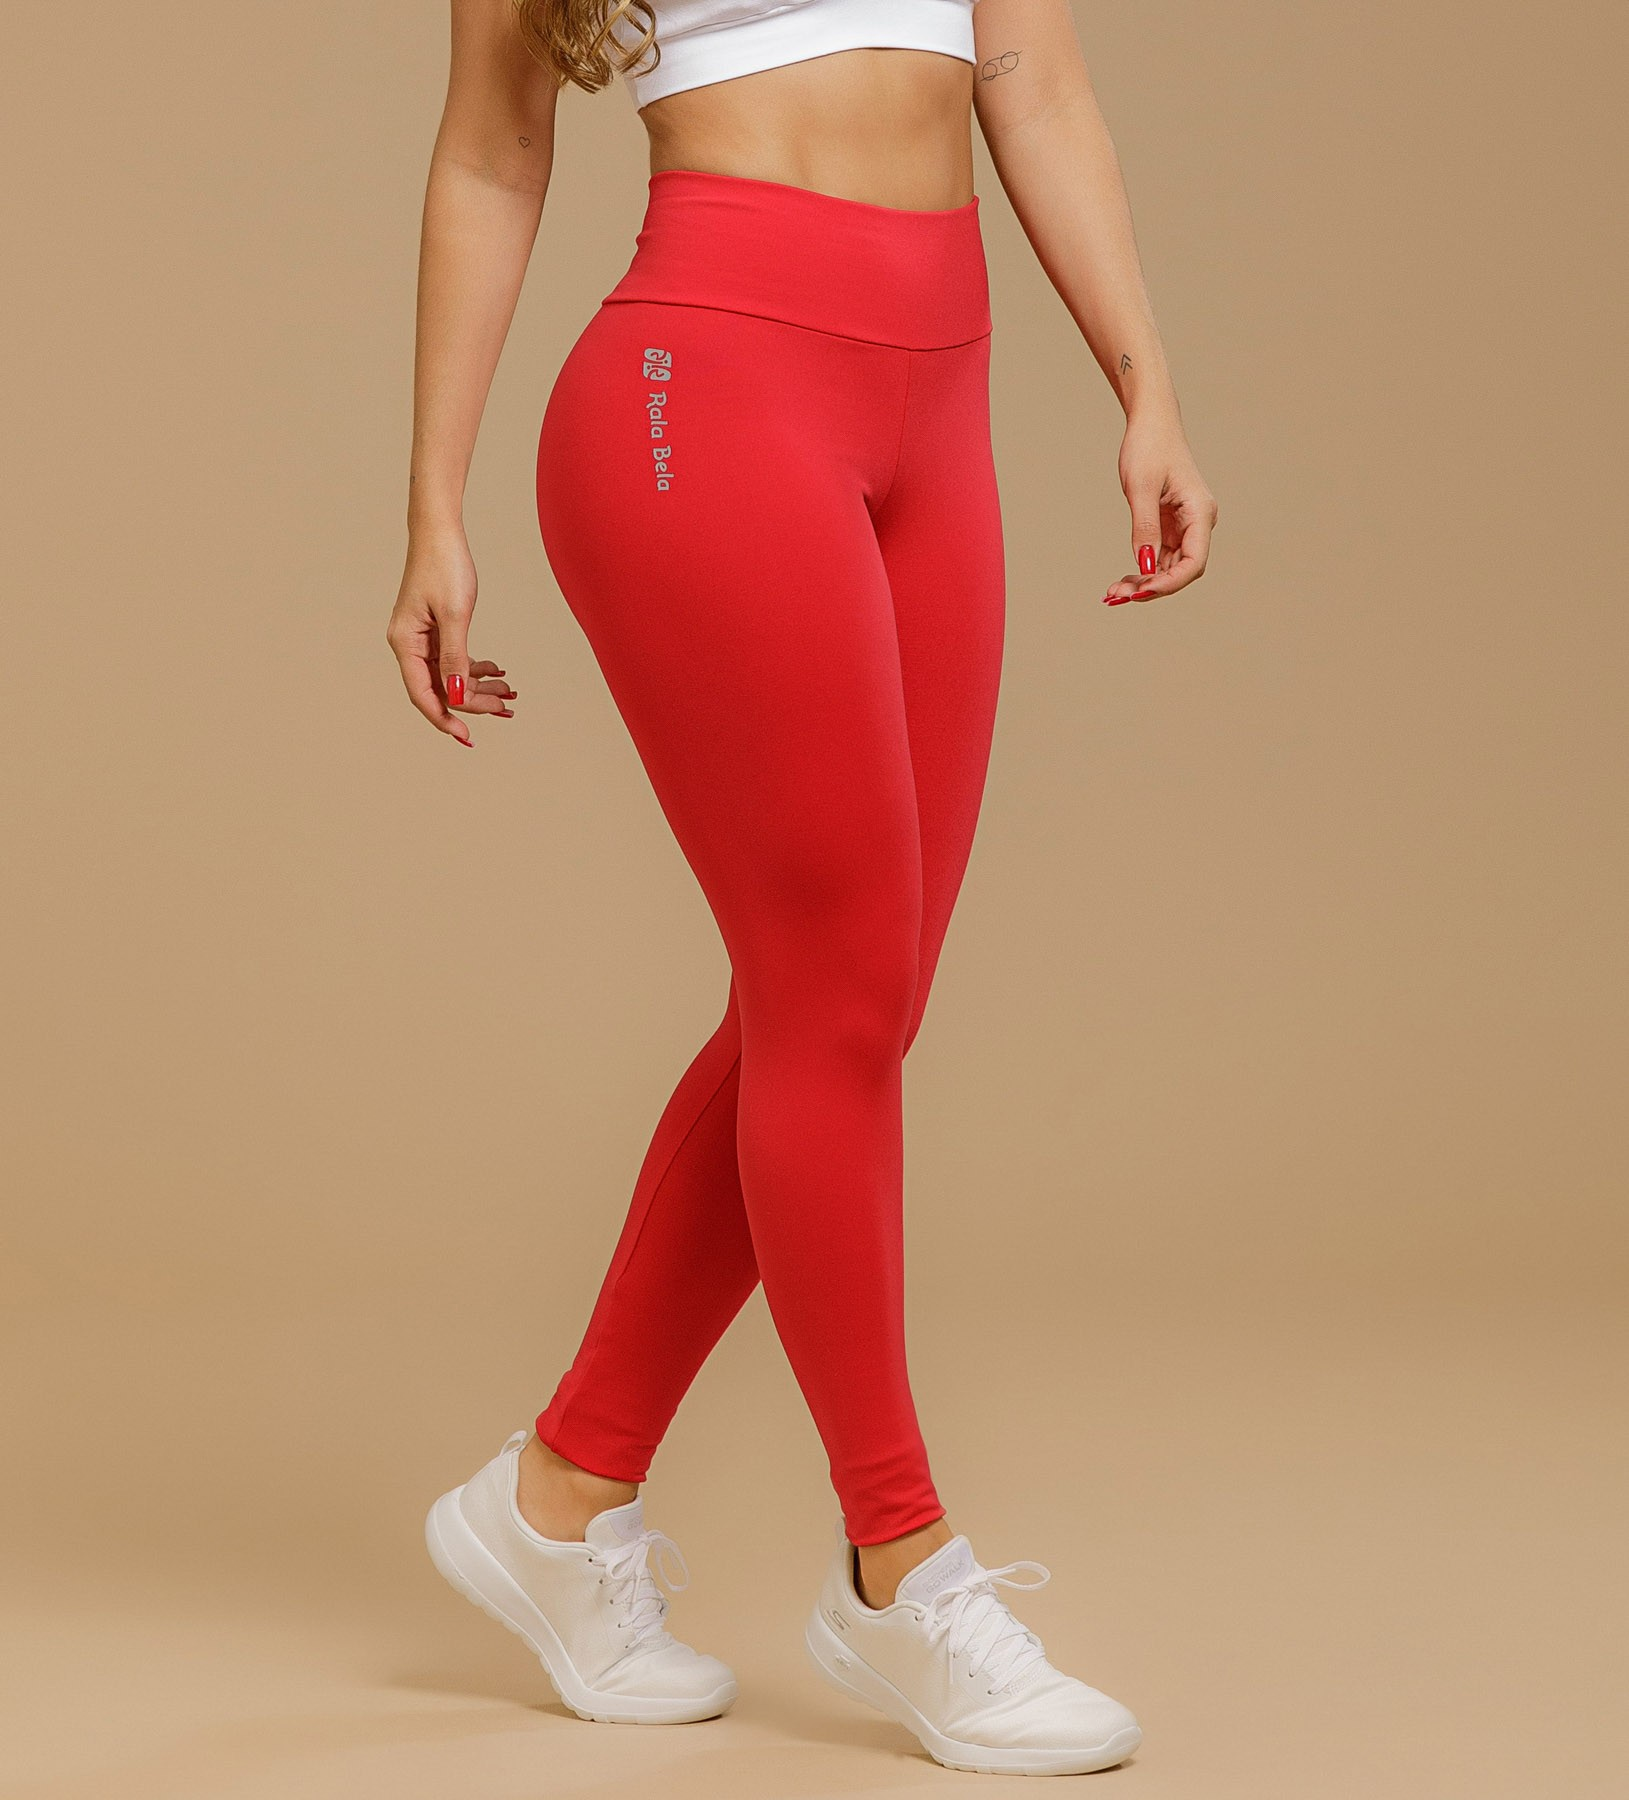 Legging Supplex Sport Essencial RB